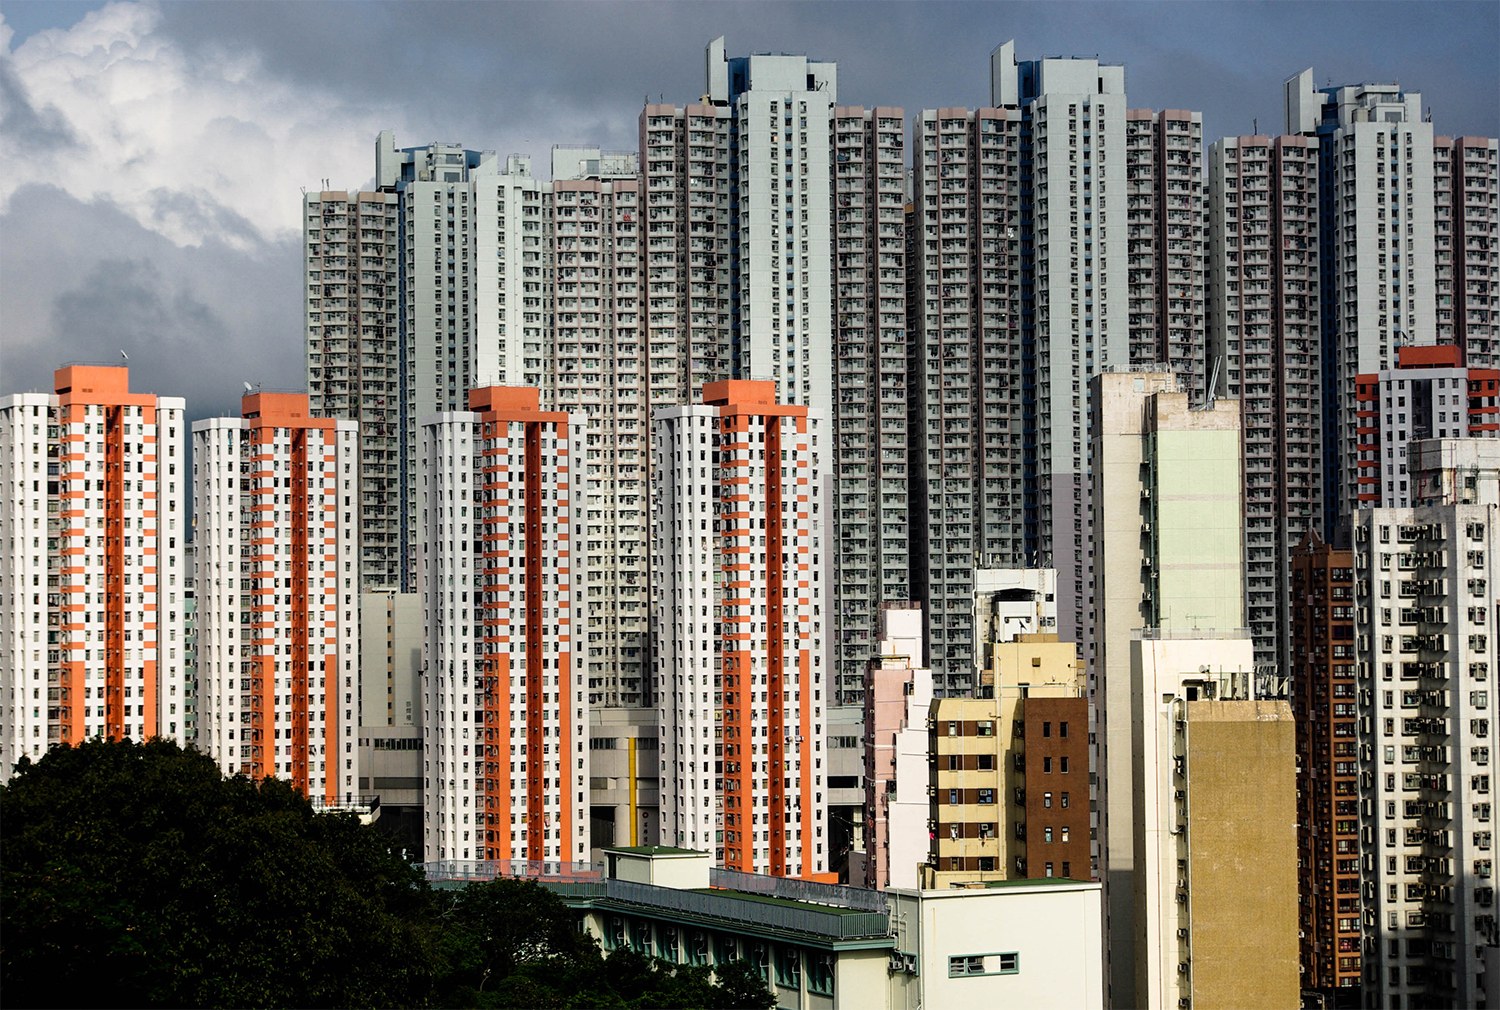 <p>Space-restricted Hong Kong has been building high-density high-rise housing for decades. More and more districts are taking on this character.<br /></p>